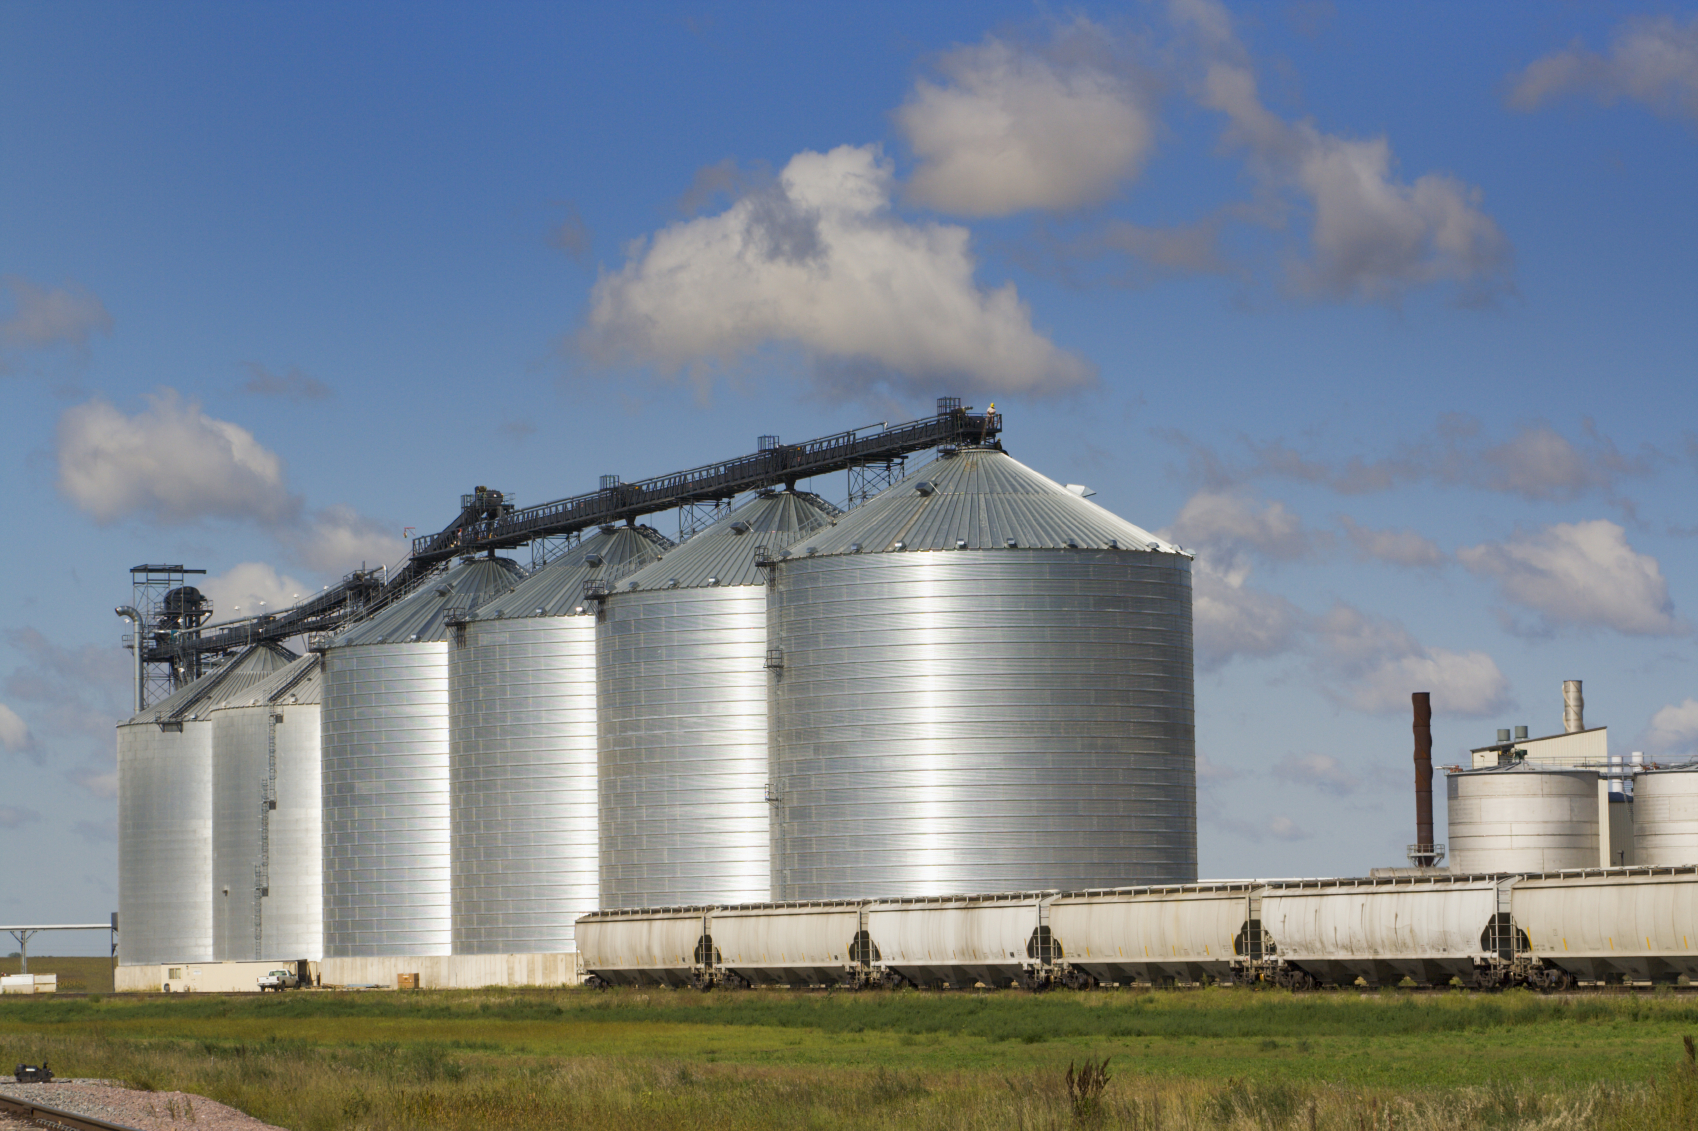 Inland grain elevator with grain rail cars to help demonstrate rail rates.